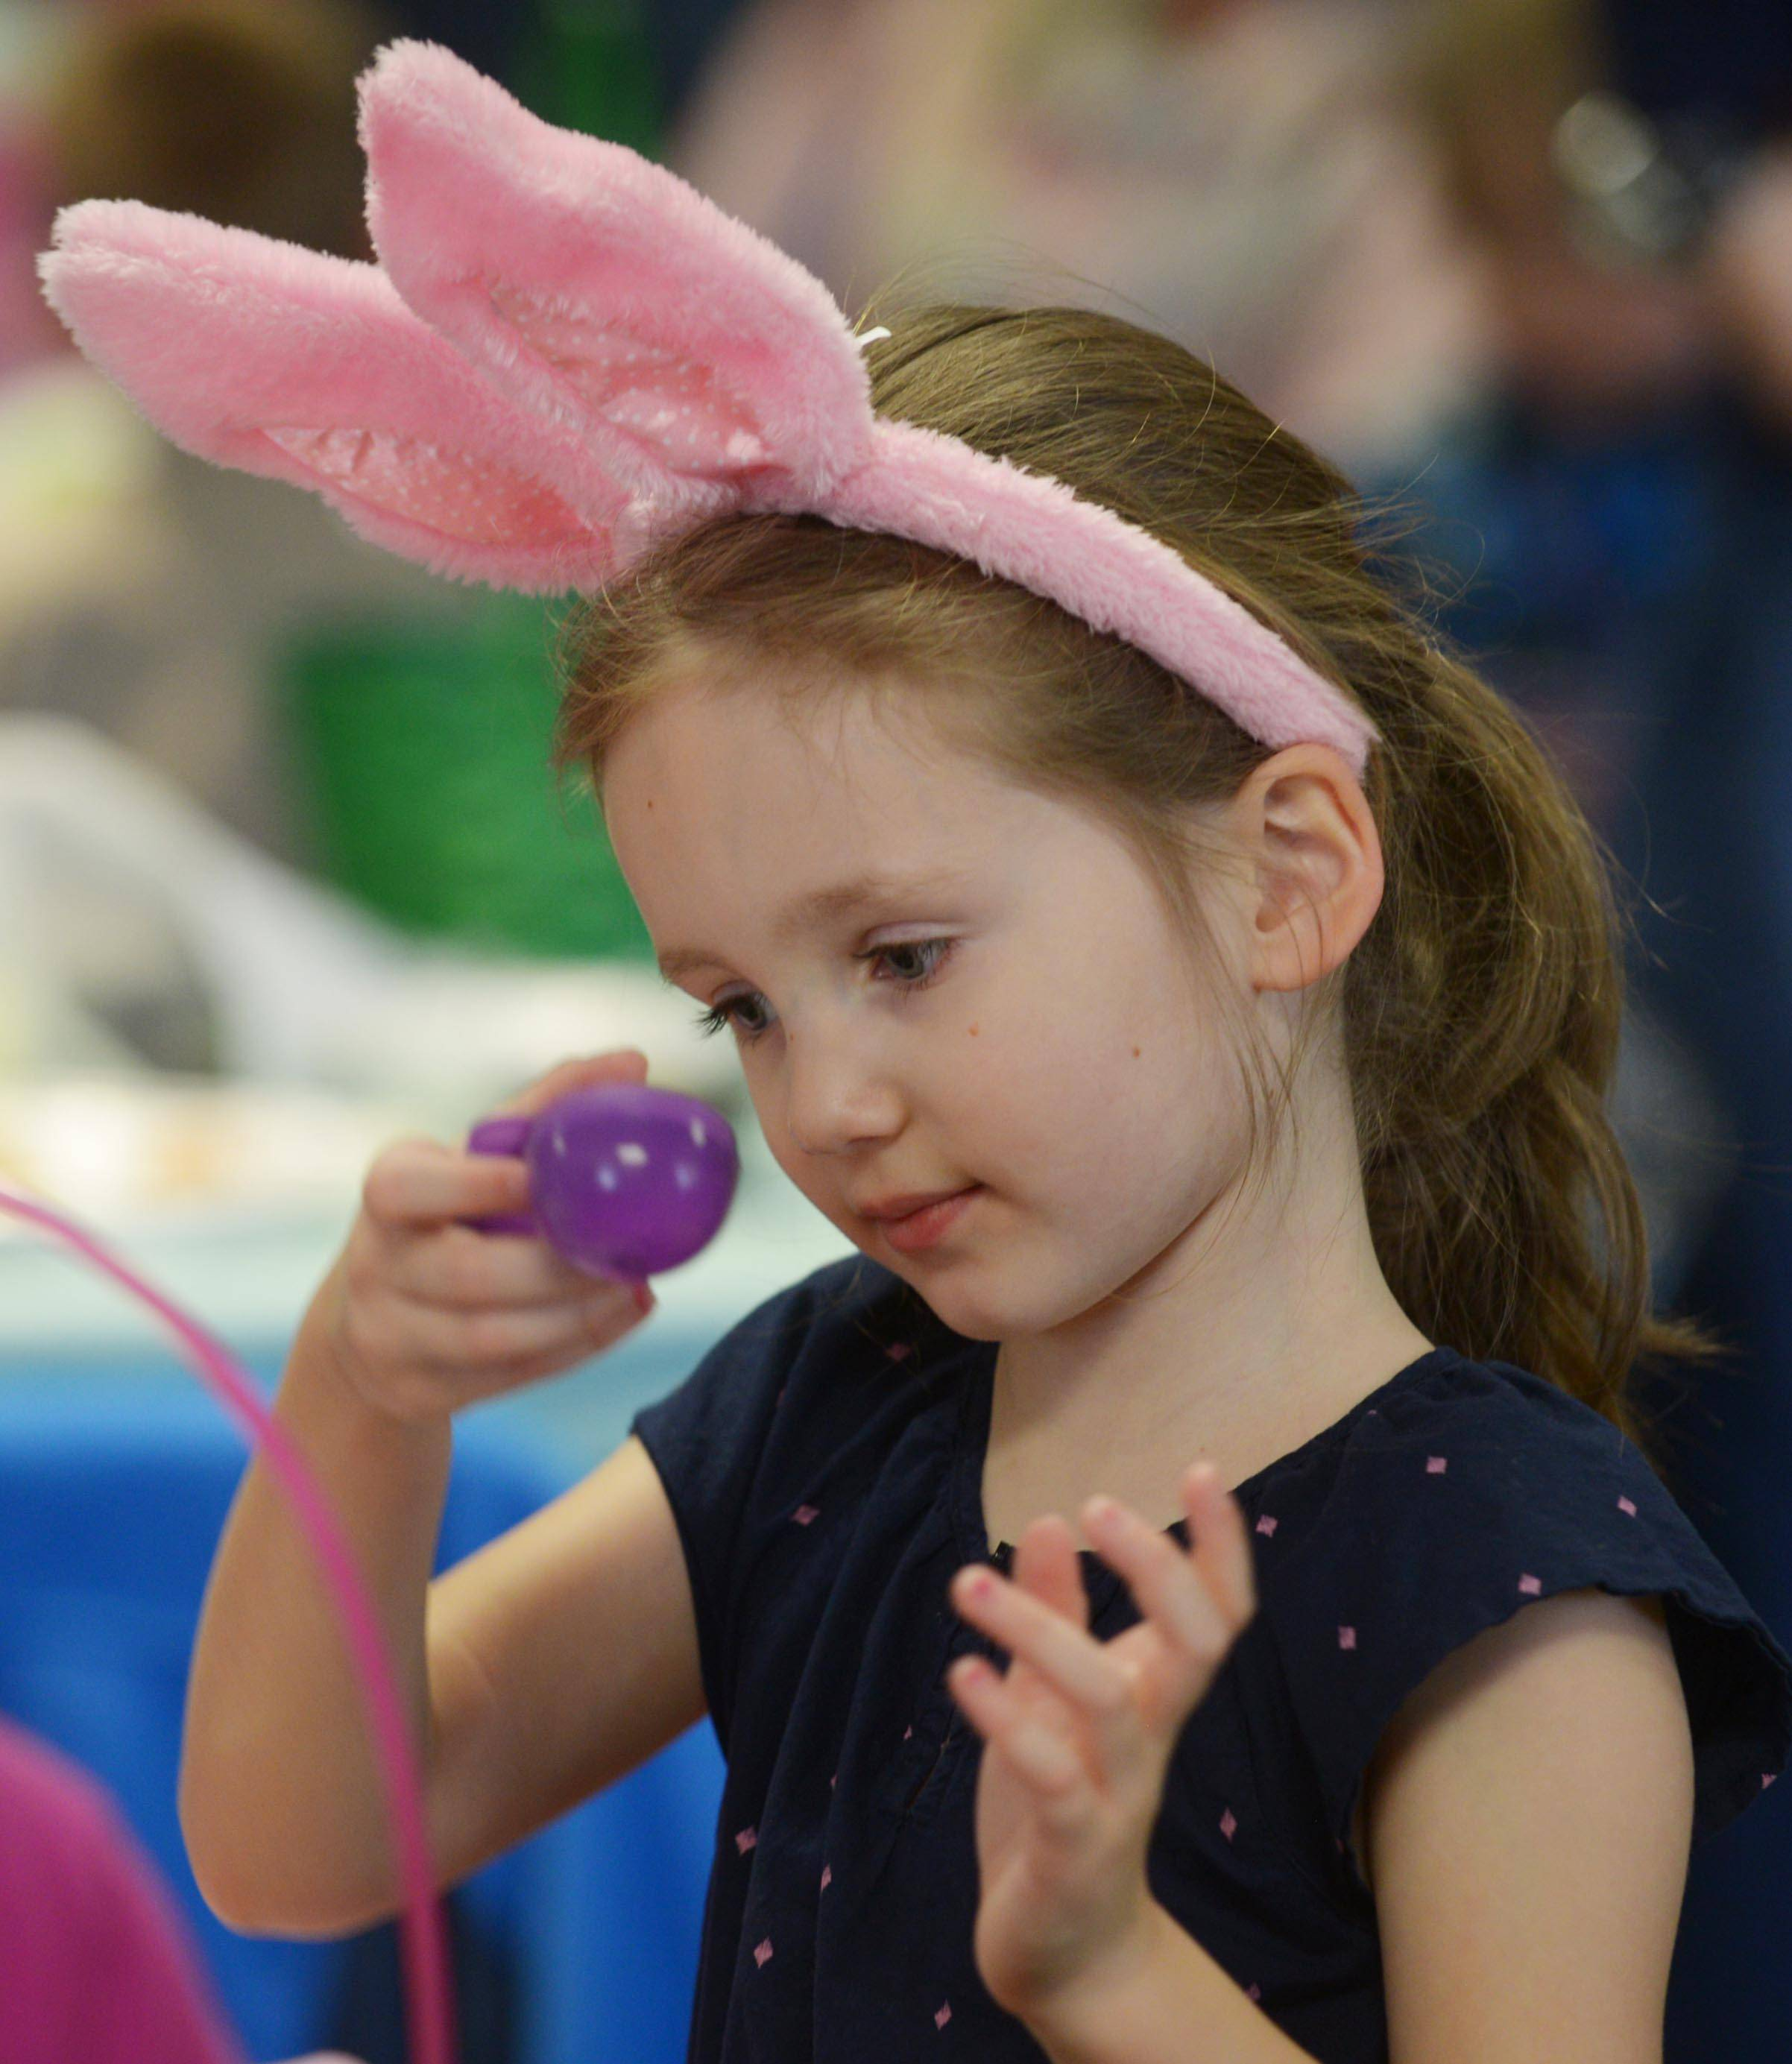 Adelaide Freeborn, 4, of Vernon Hills looks inside an Easter egg during the Hoppin' Holiday Hunt at the Sullivan Community Center in Vernon Hills Saturday.